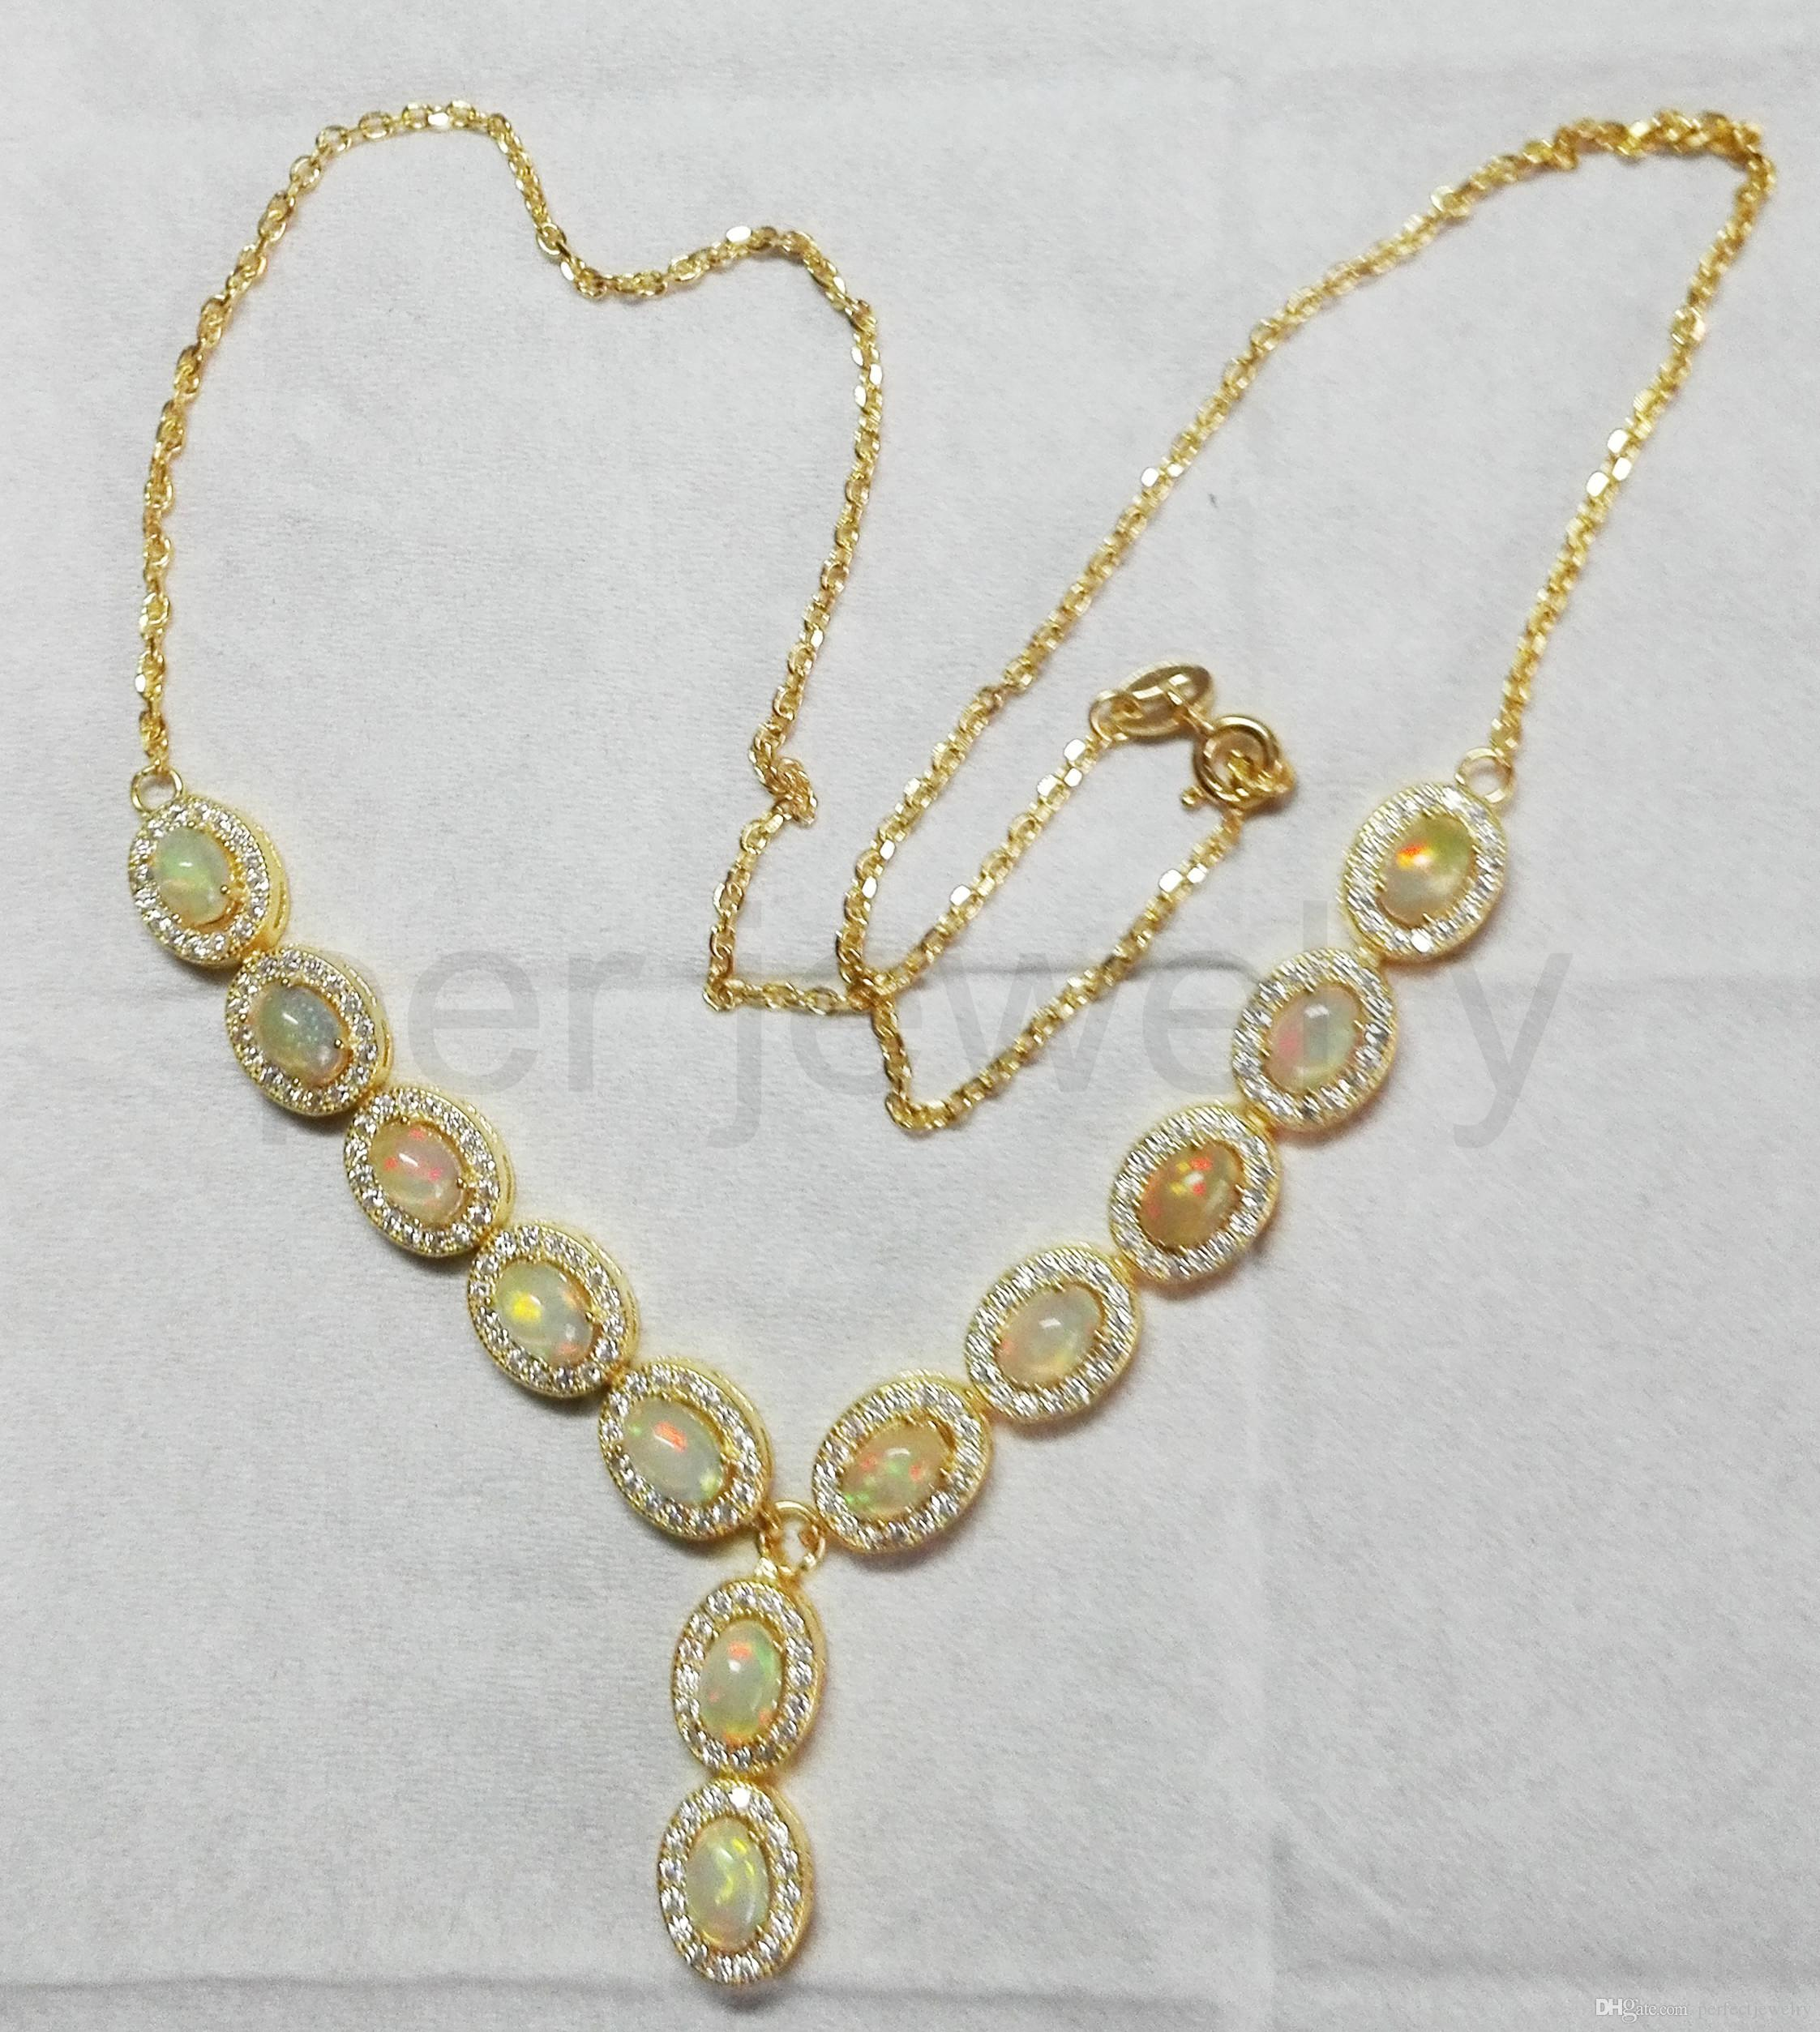 necklace z opal necklaces pendant v jewelry id vintage real chain d hollycraft at org